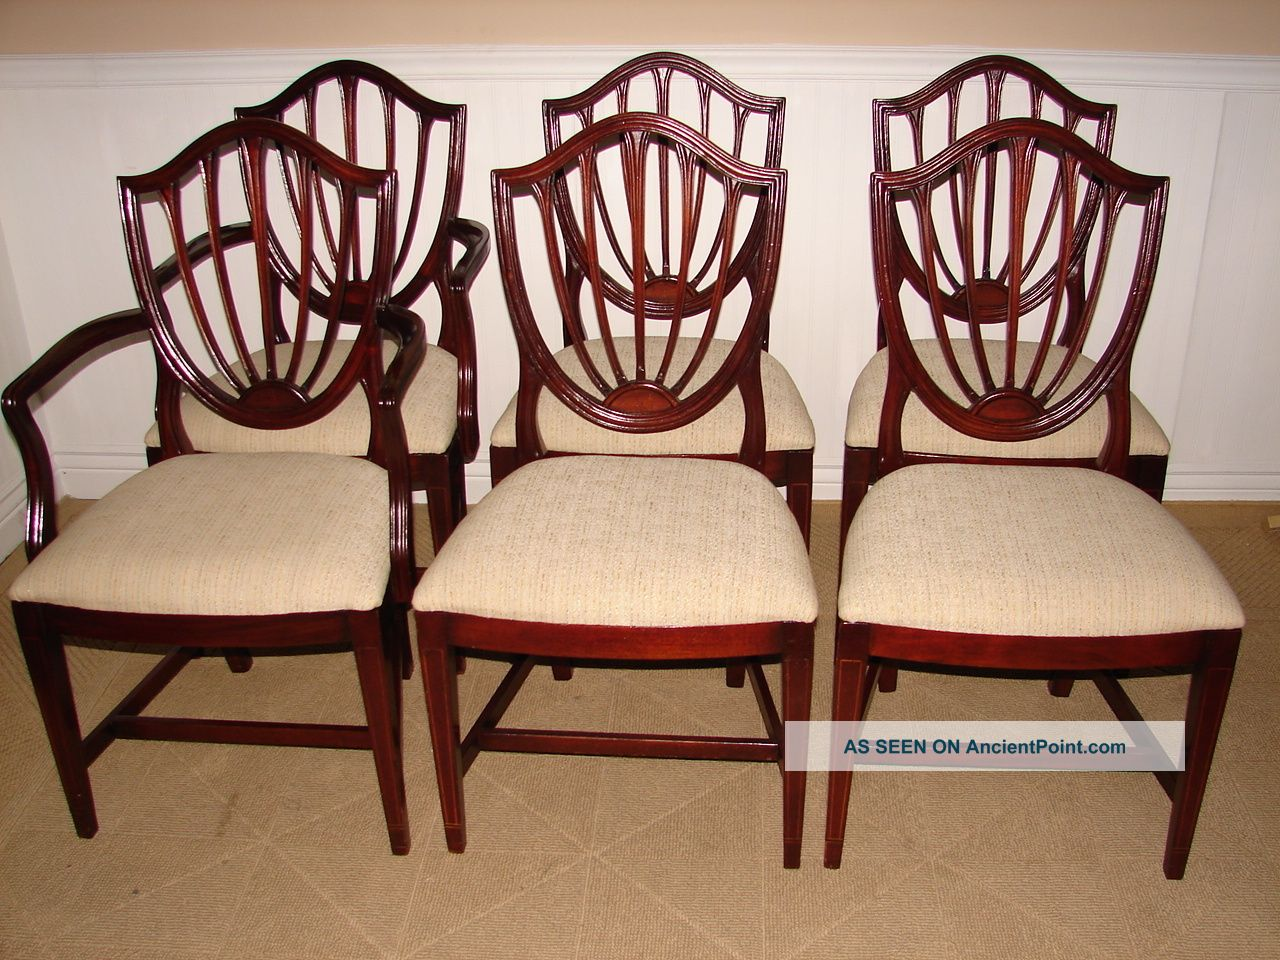 furniture ethan allen dining room set 6 chairs table